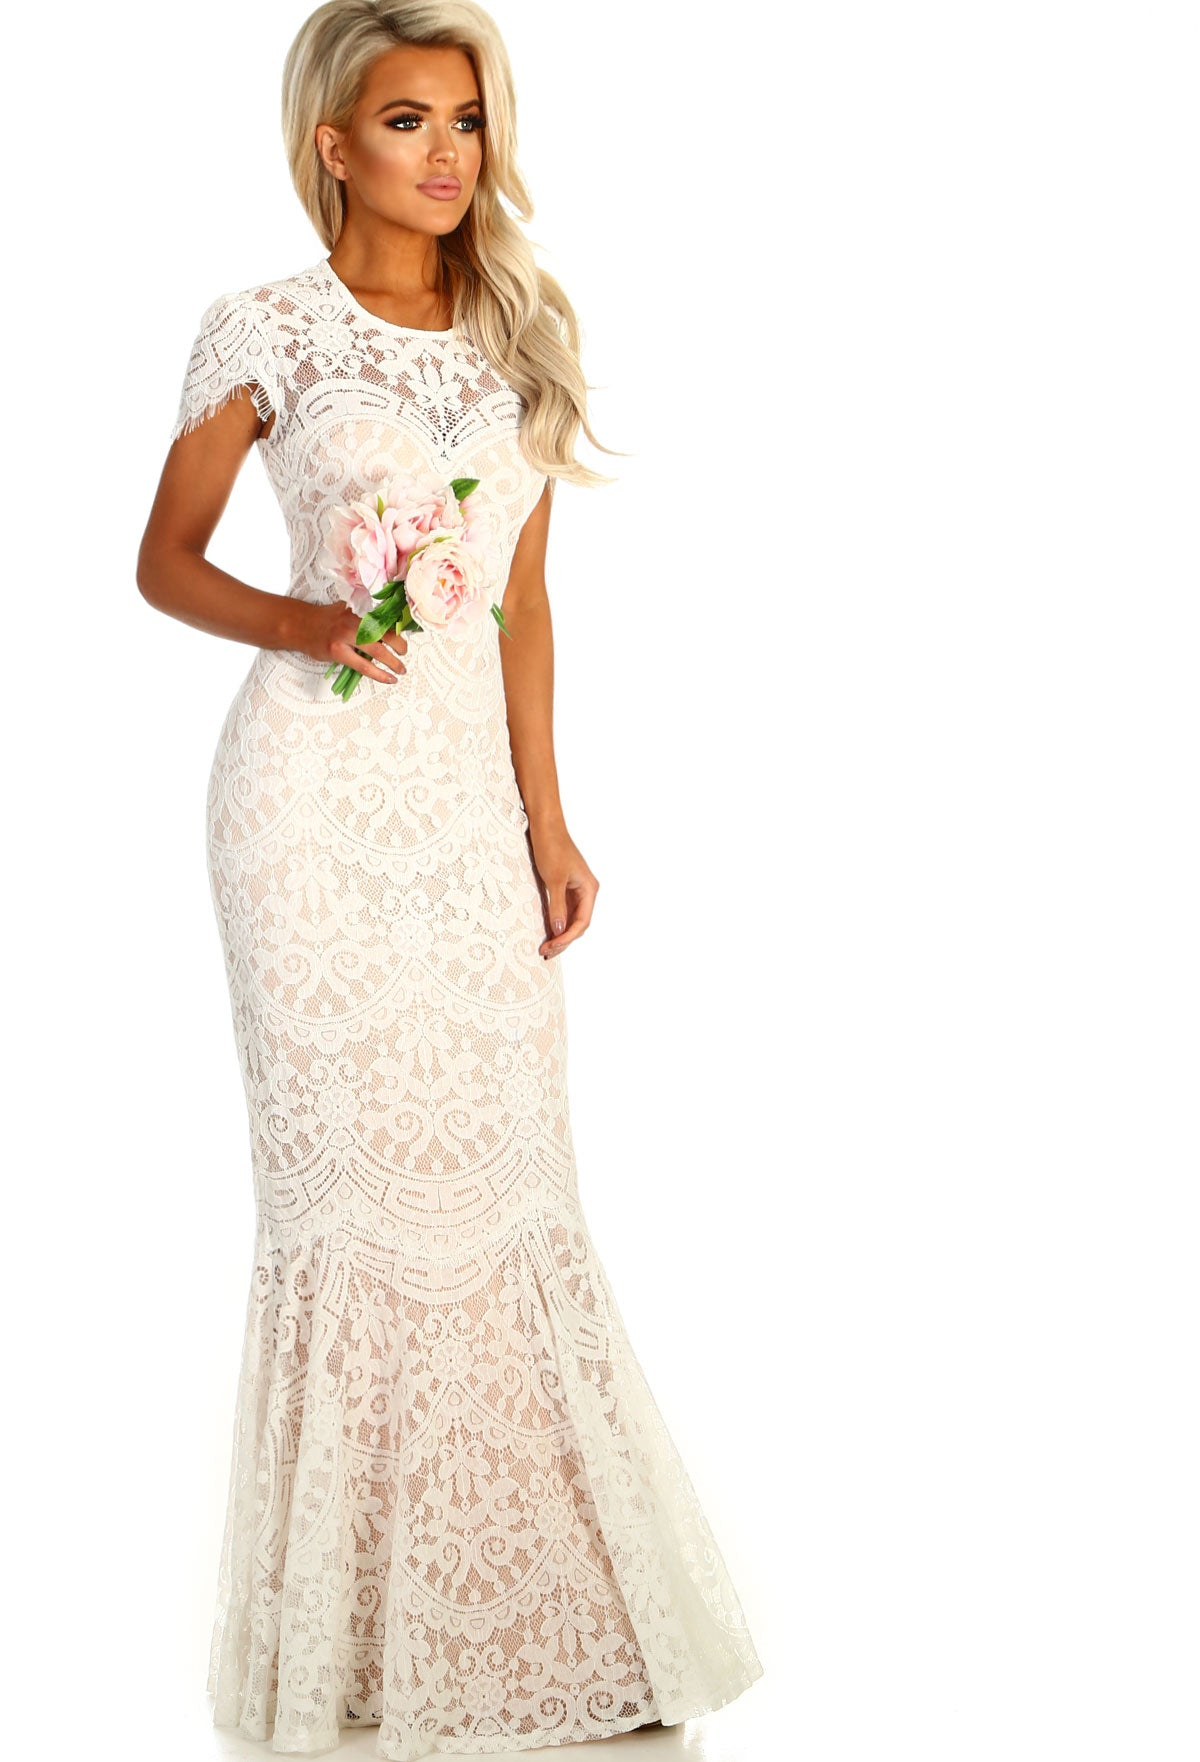 477ee9605e5 White Lace Fishtail Dress – All About The Dress A Bridal & Formal ...